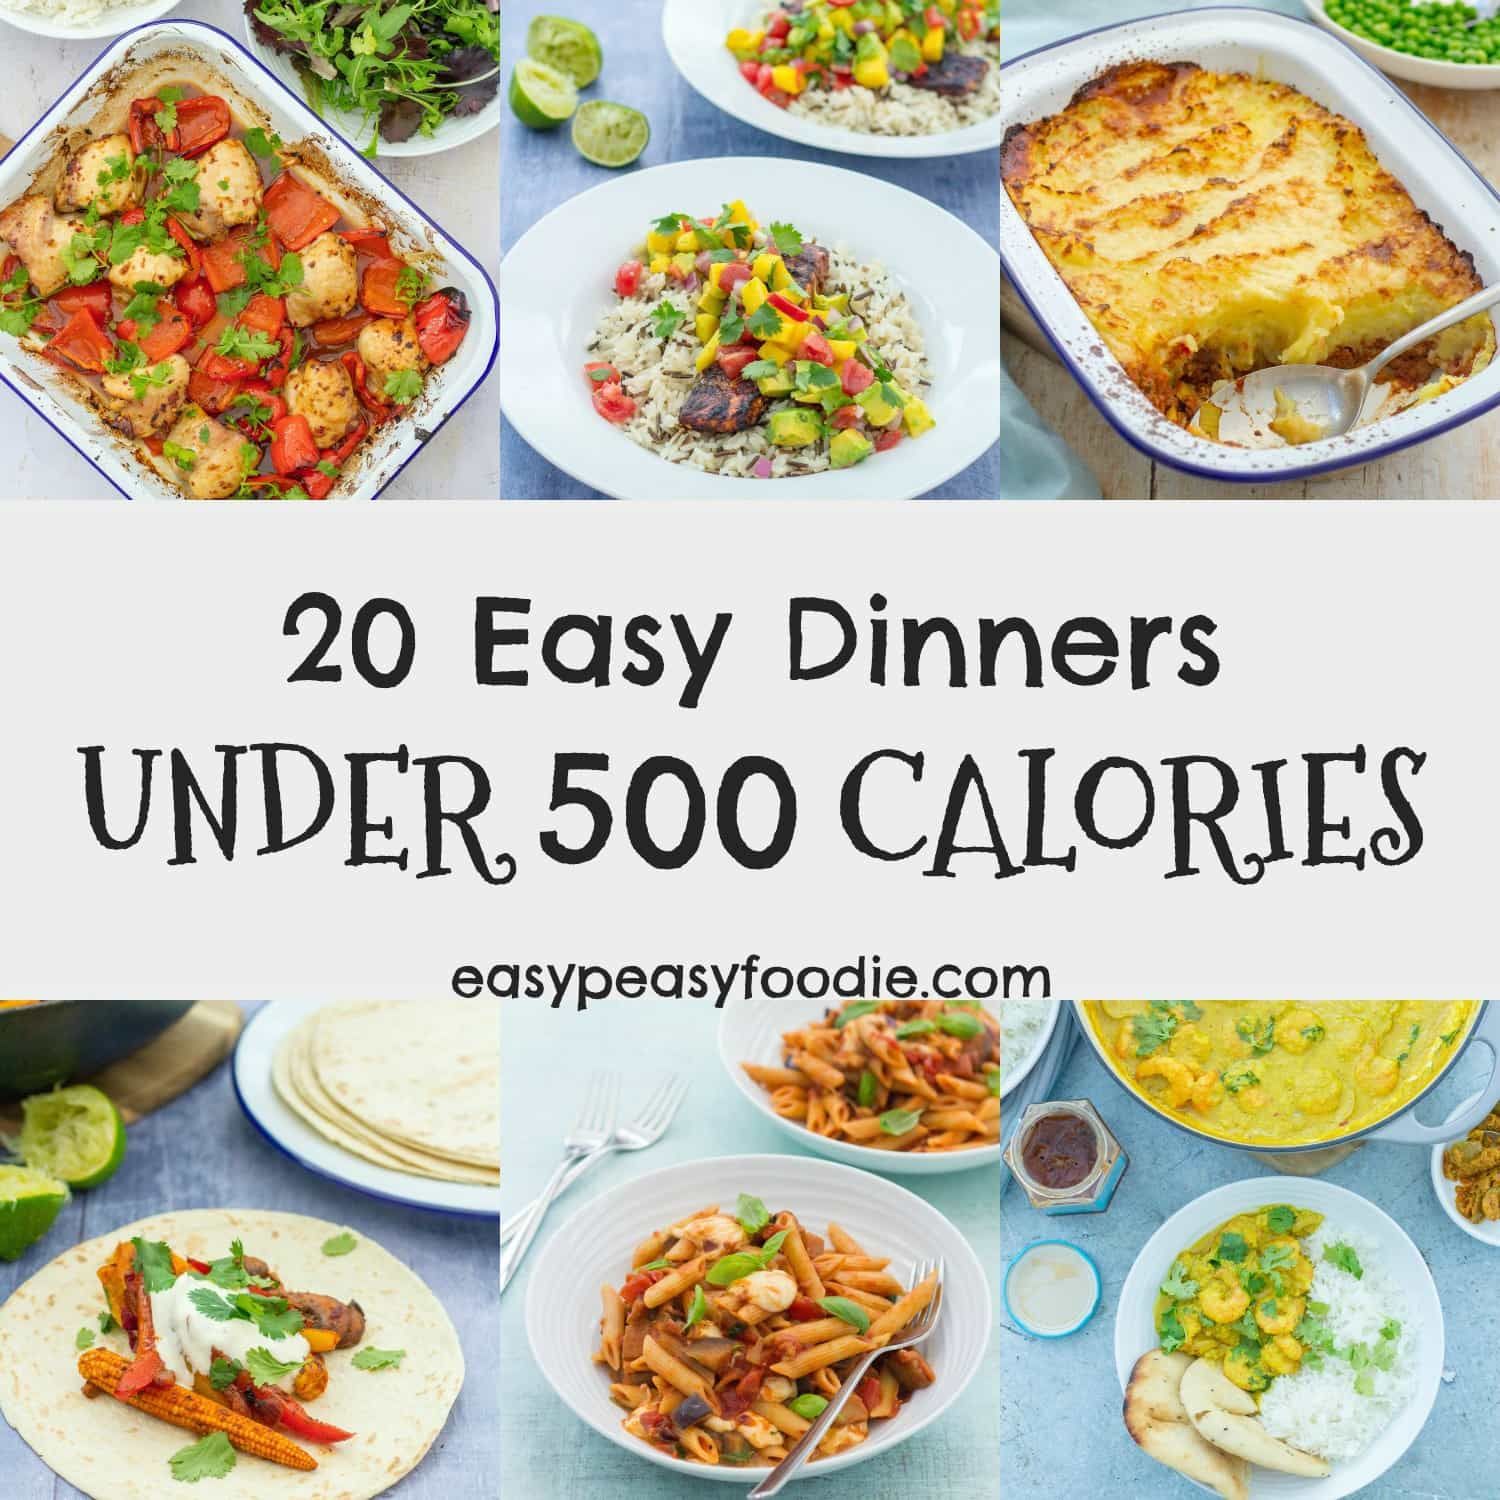 Healthy Dinner Recipes Under 3: 20 Easy Dinners Under 500 Calories